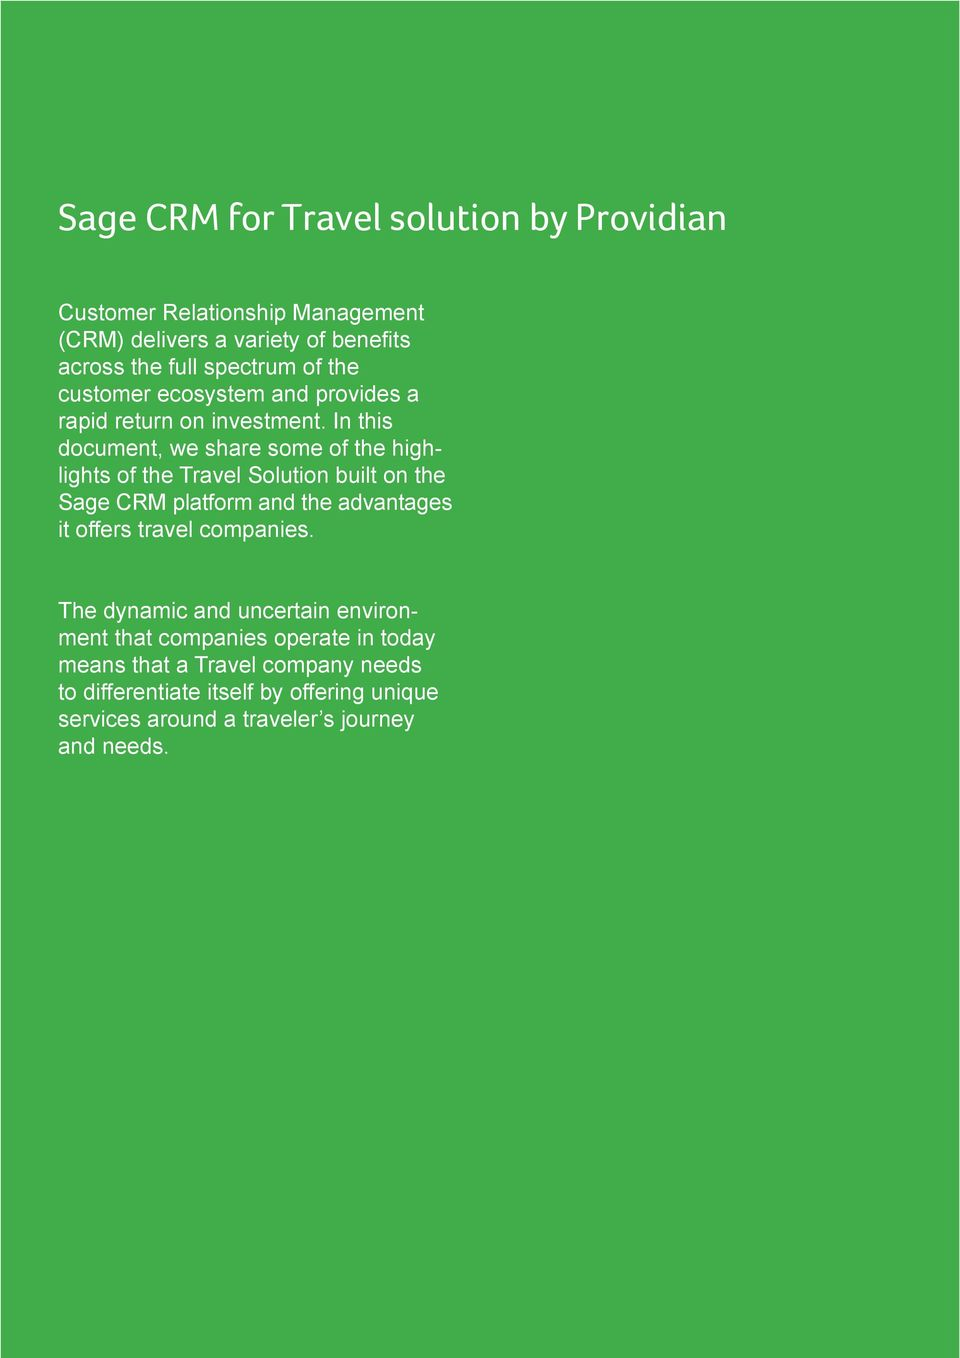 In this document, we share some of the highlights of the Travel Solution built on the Sage CRM platform and the advantages it offers